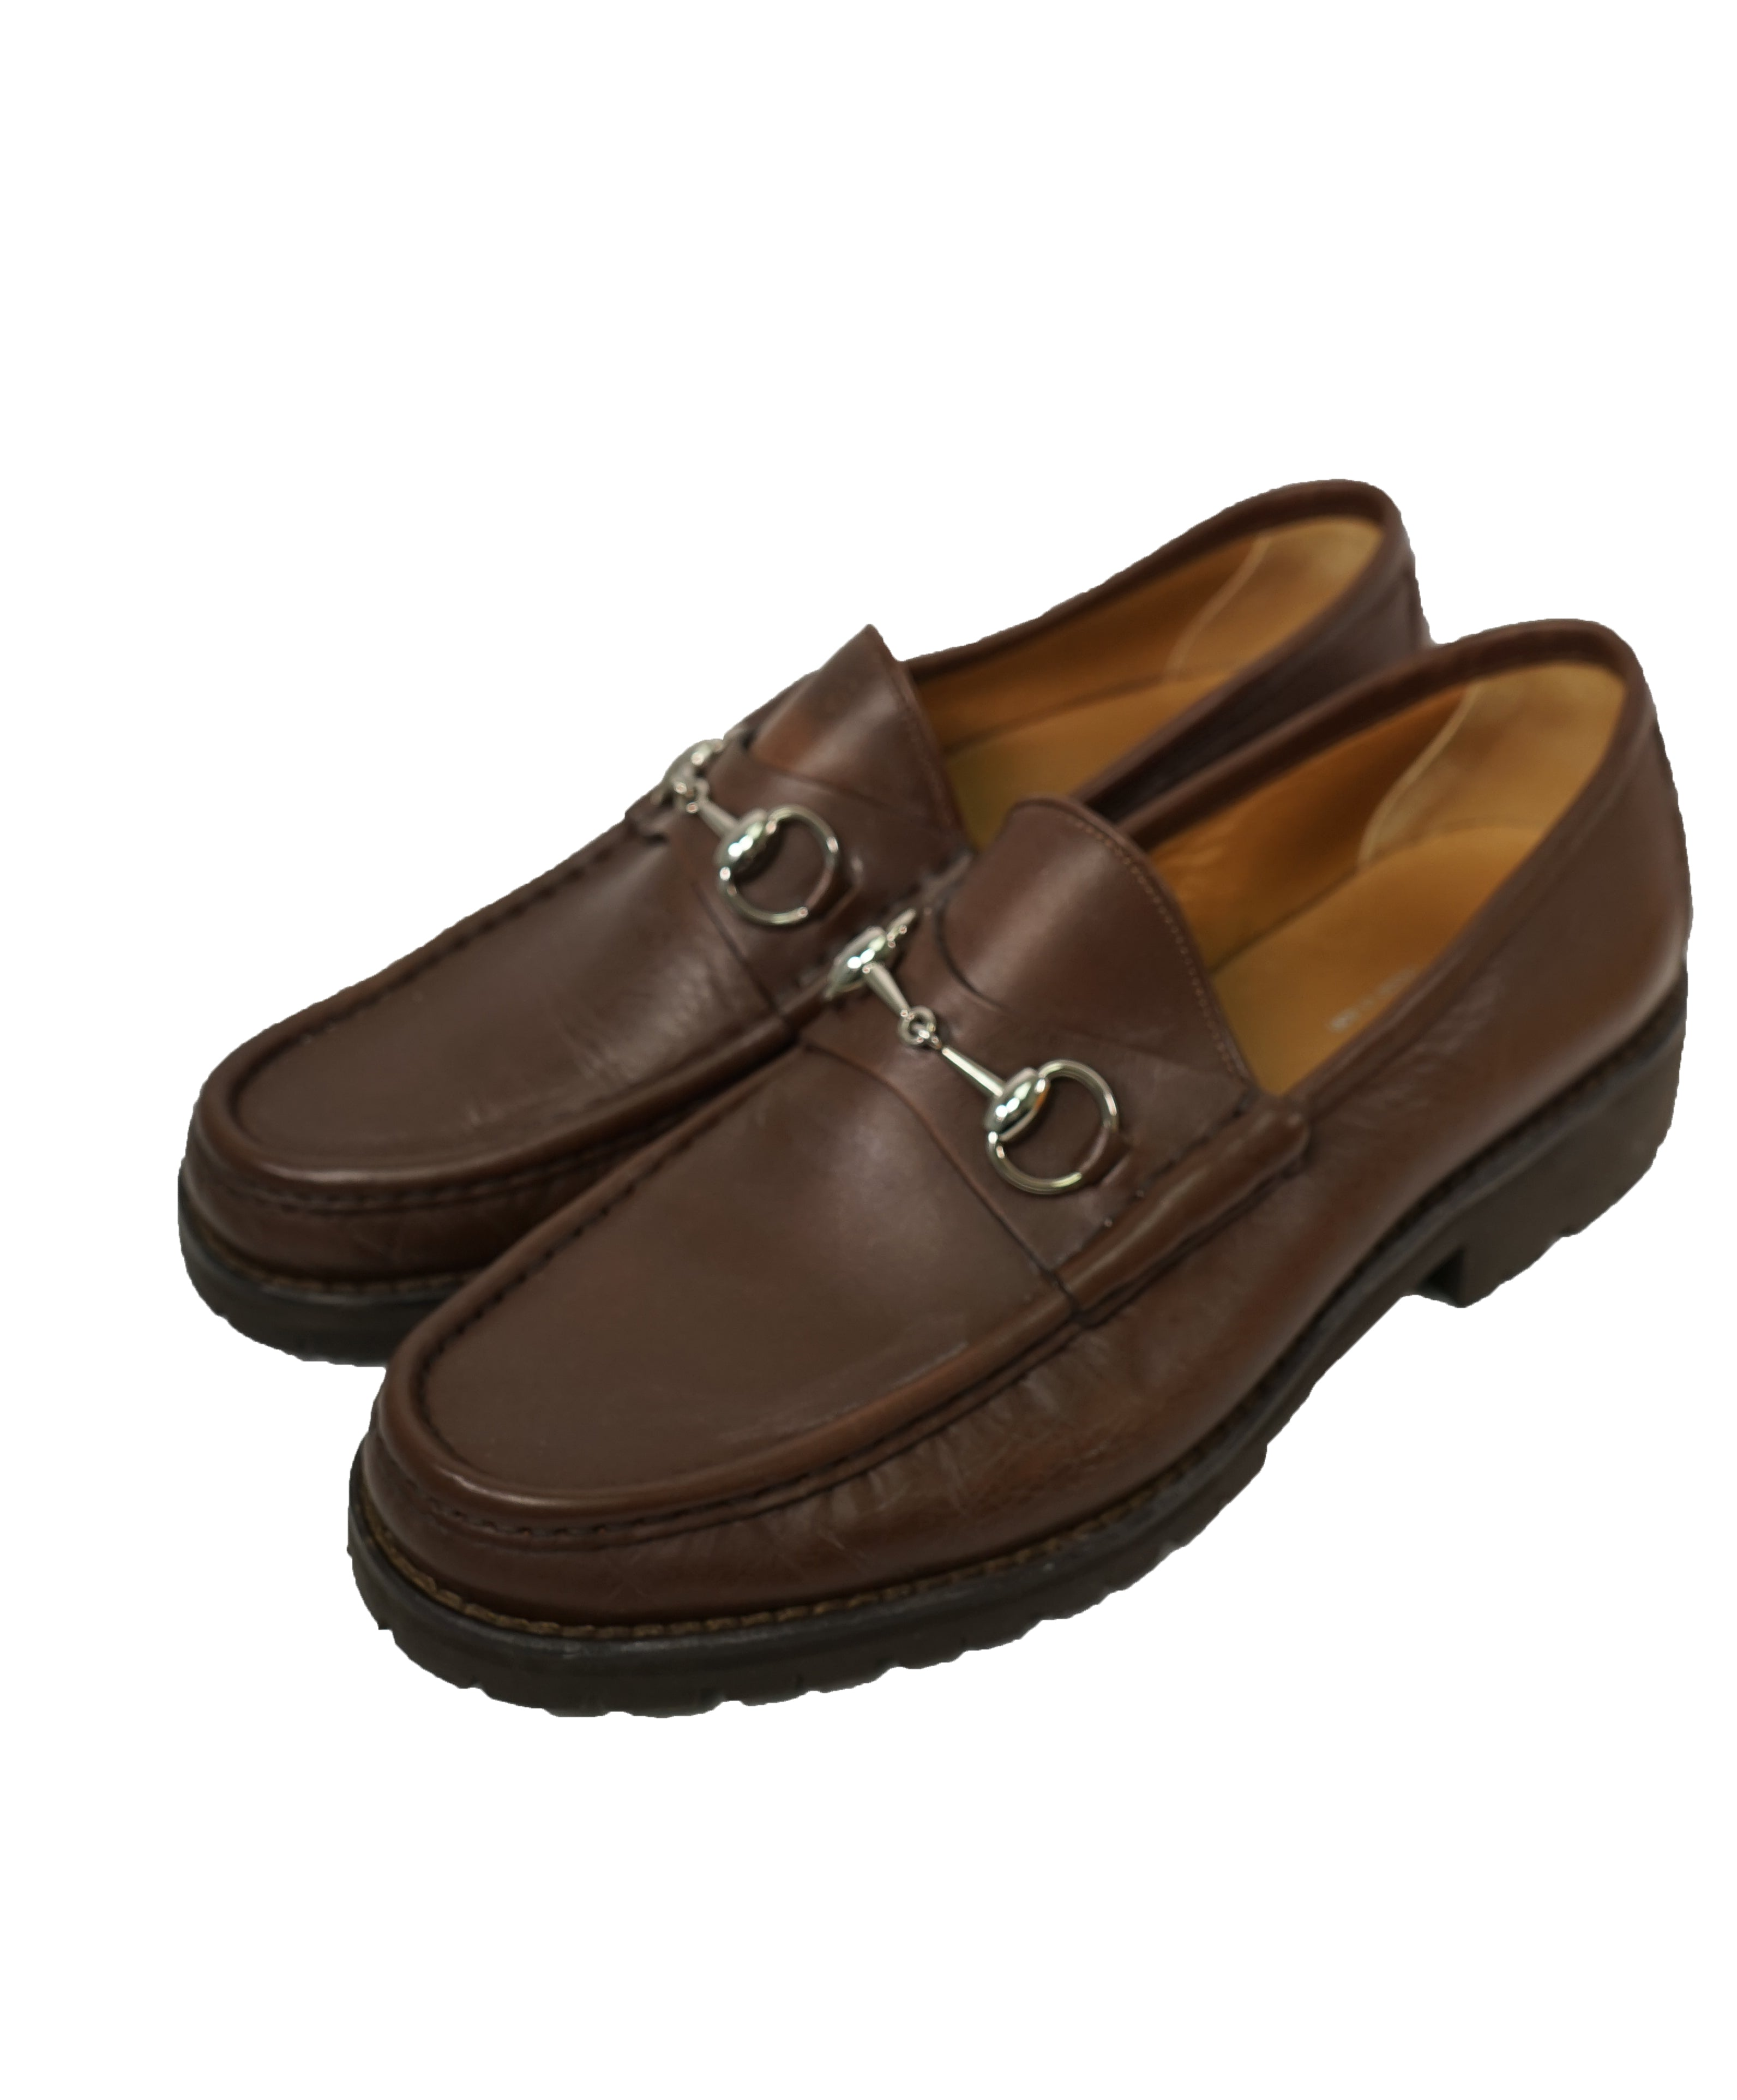 GUCCI - Horse-bit Loafers Brown Iconic Style - 10.5